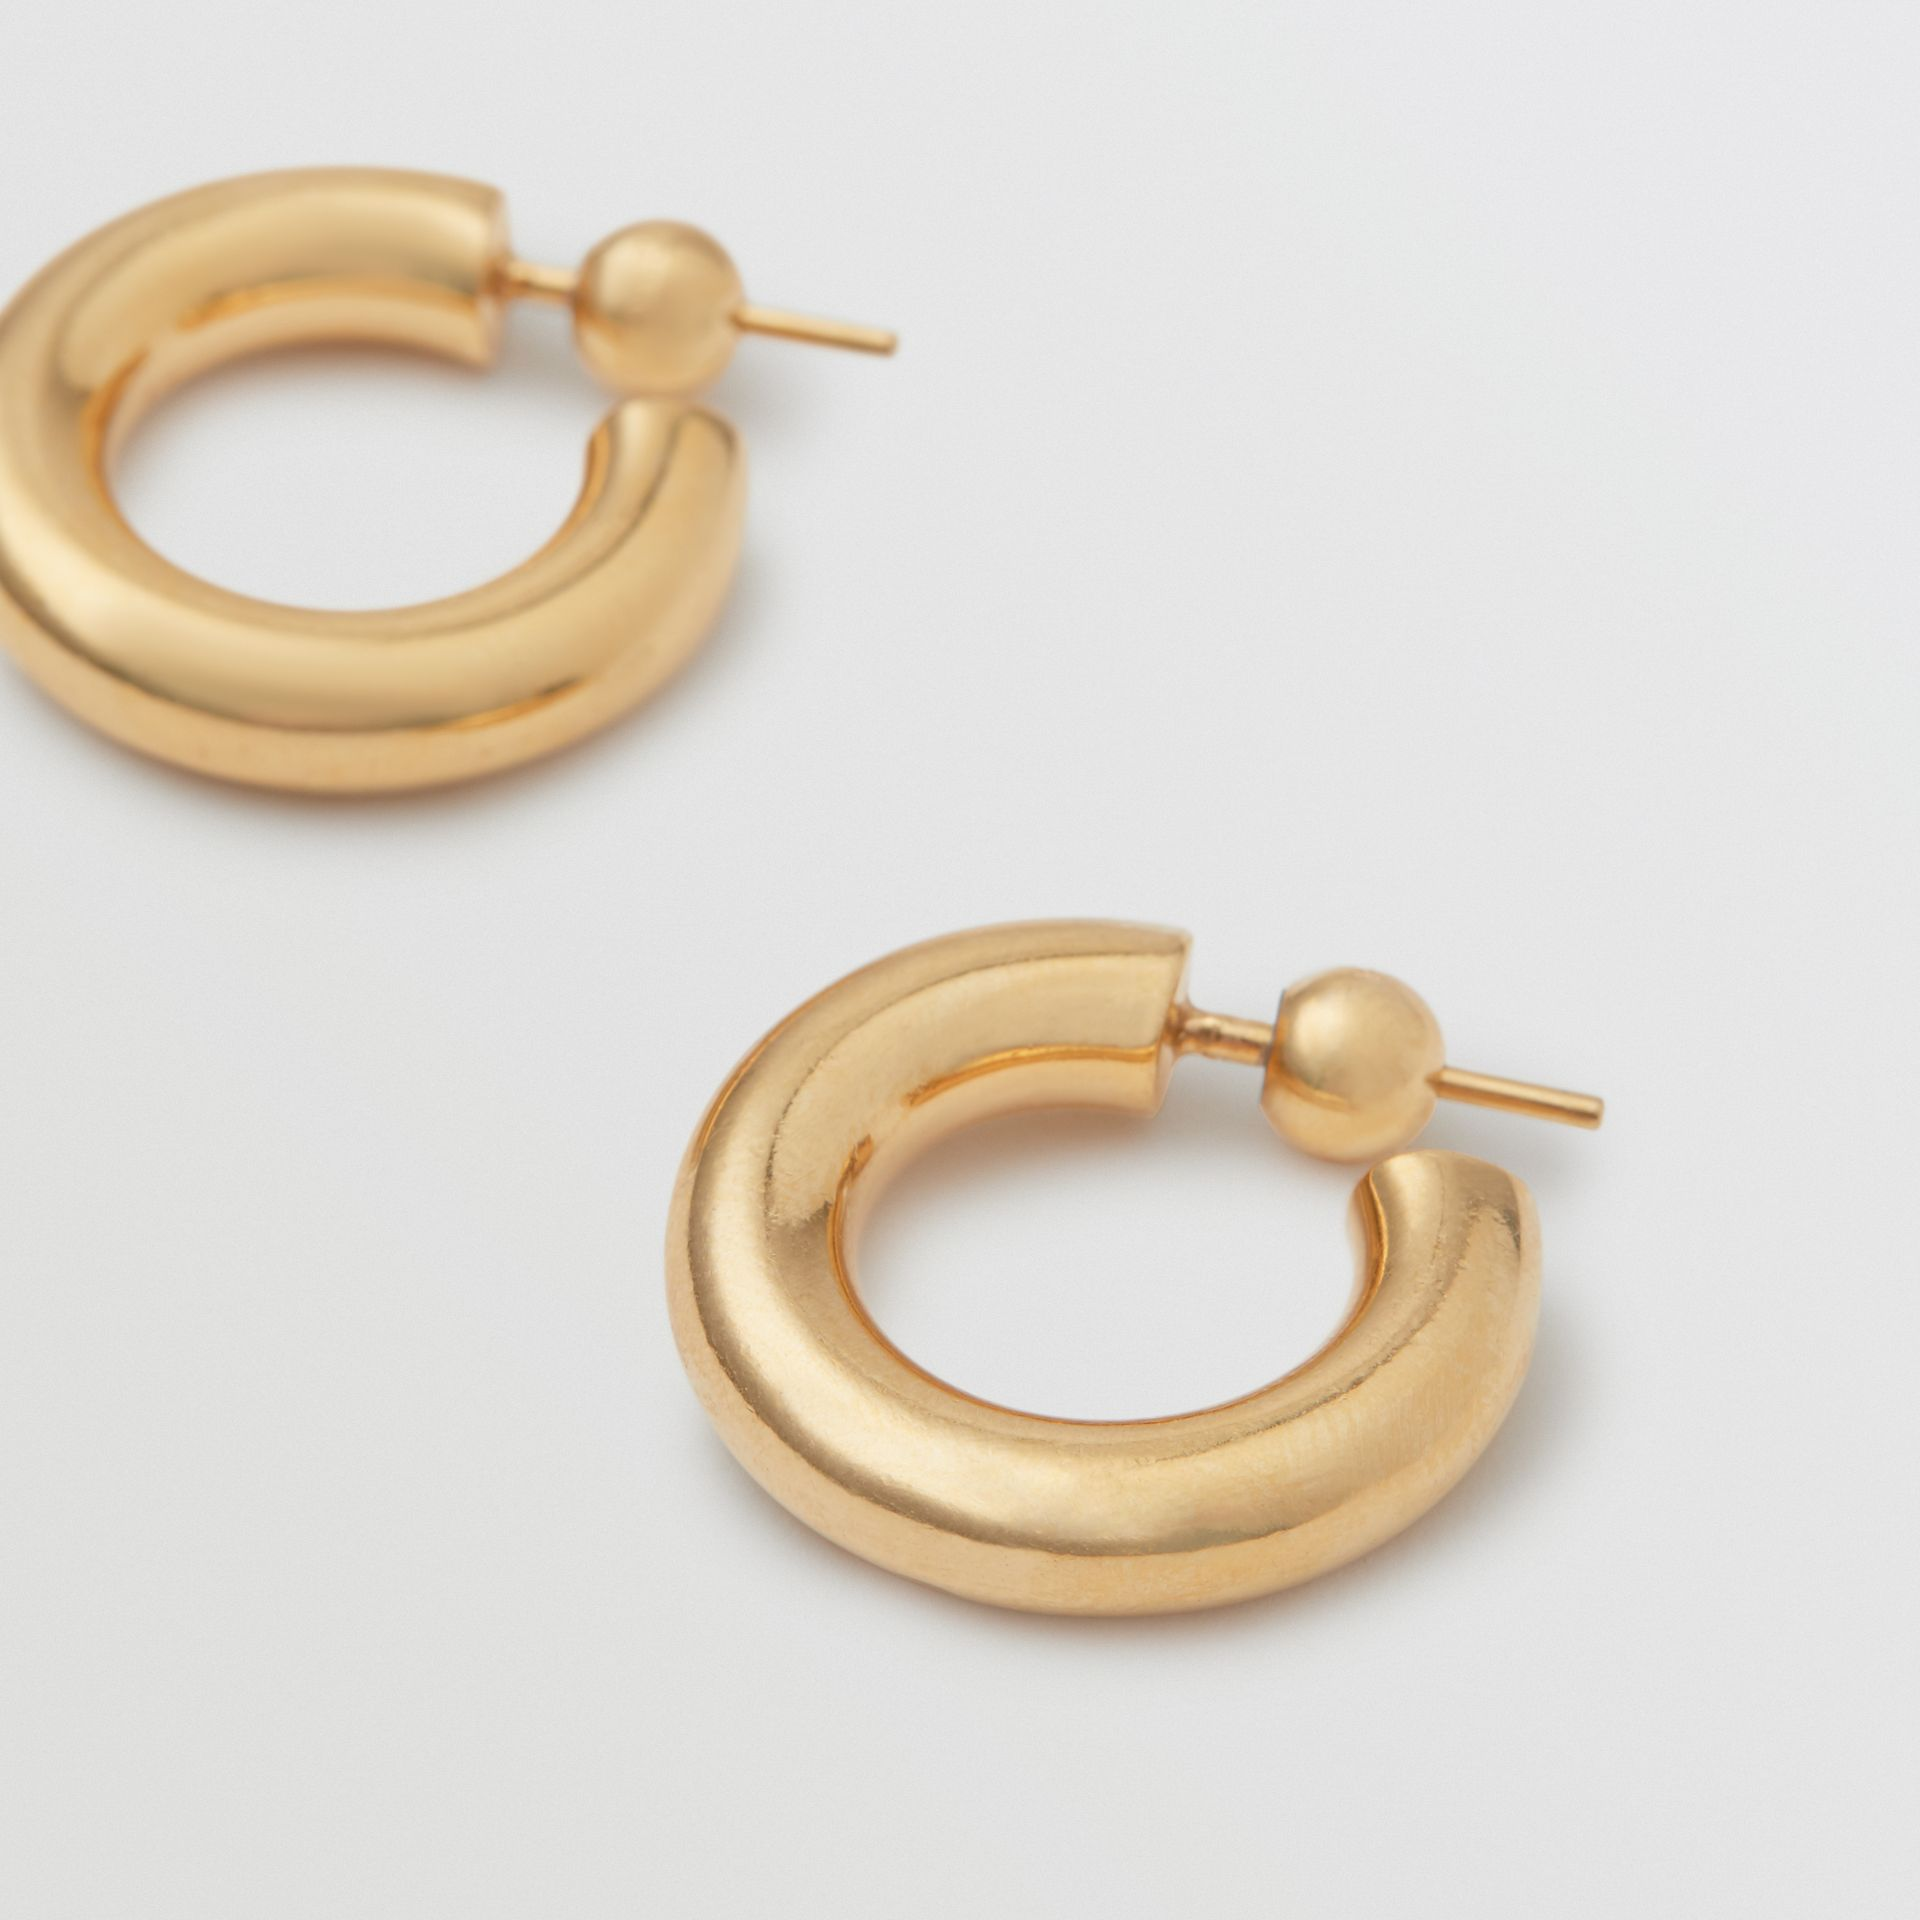 Gold-plated Hoop Earrings in Light - Women | Burberry Australia - gallery image 1